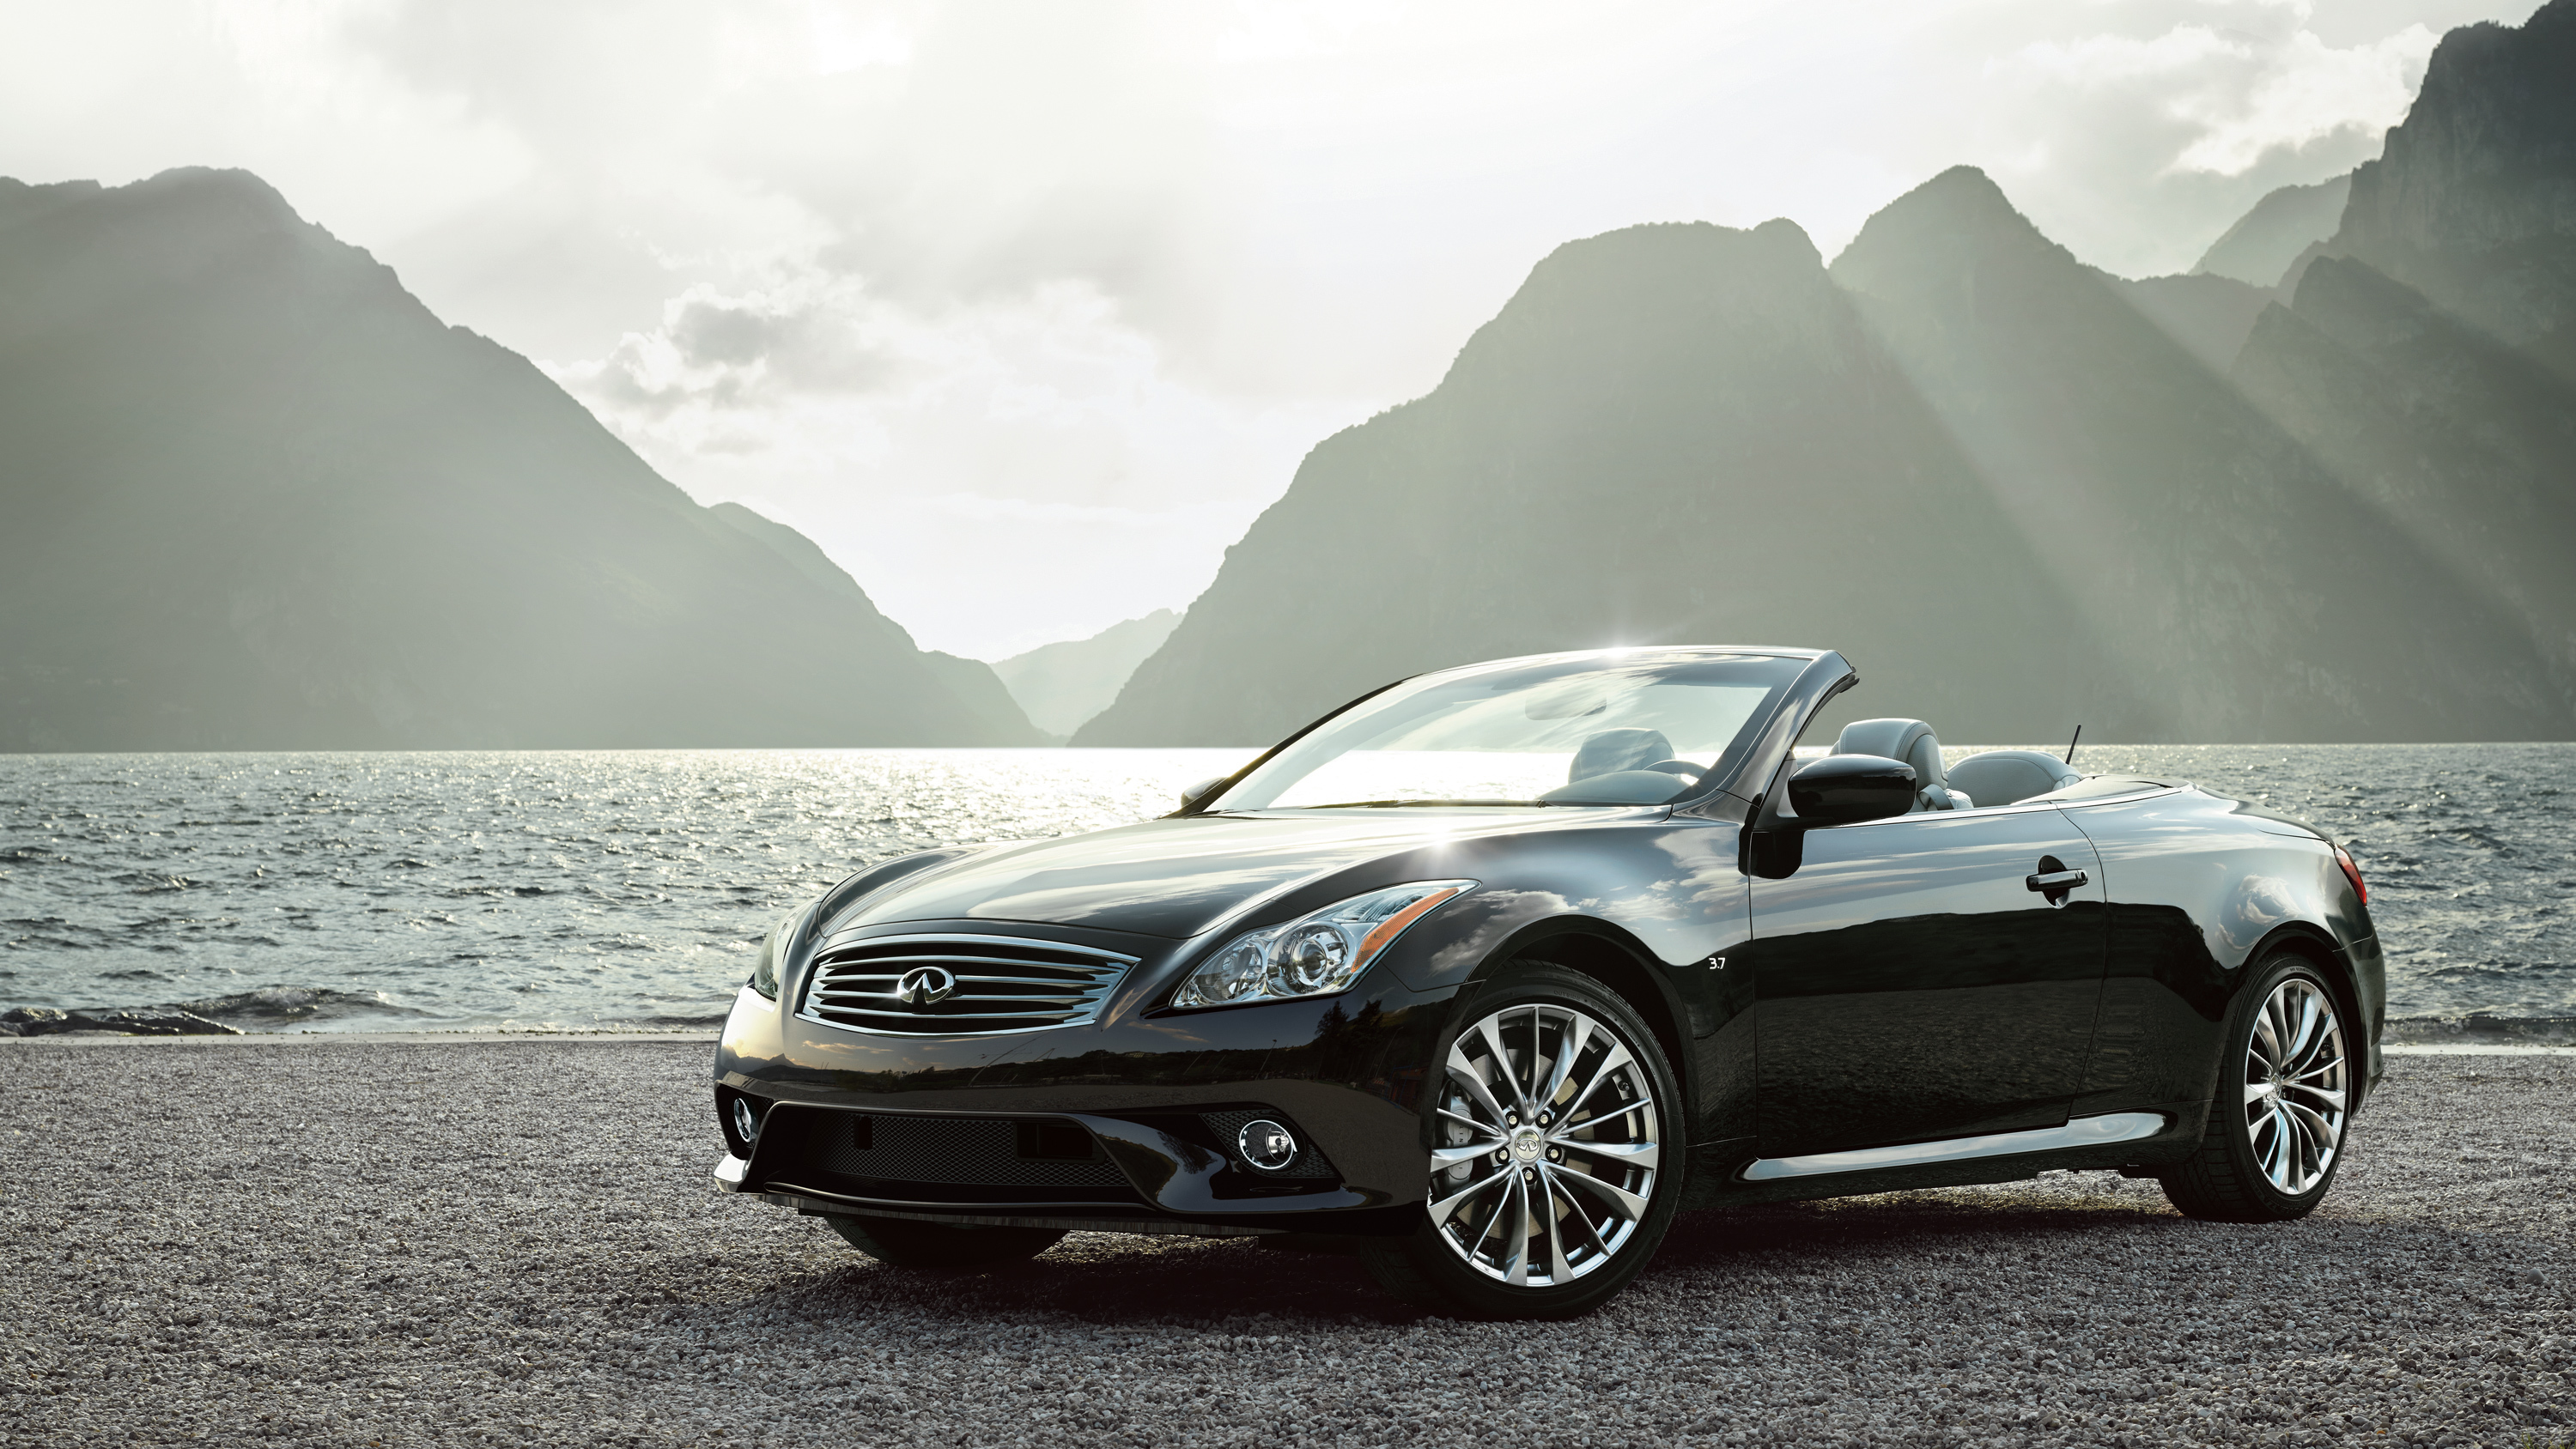 infinity convertible top infiniti cars speed convert